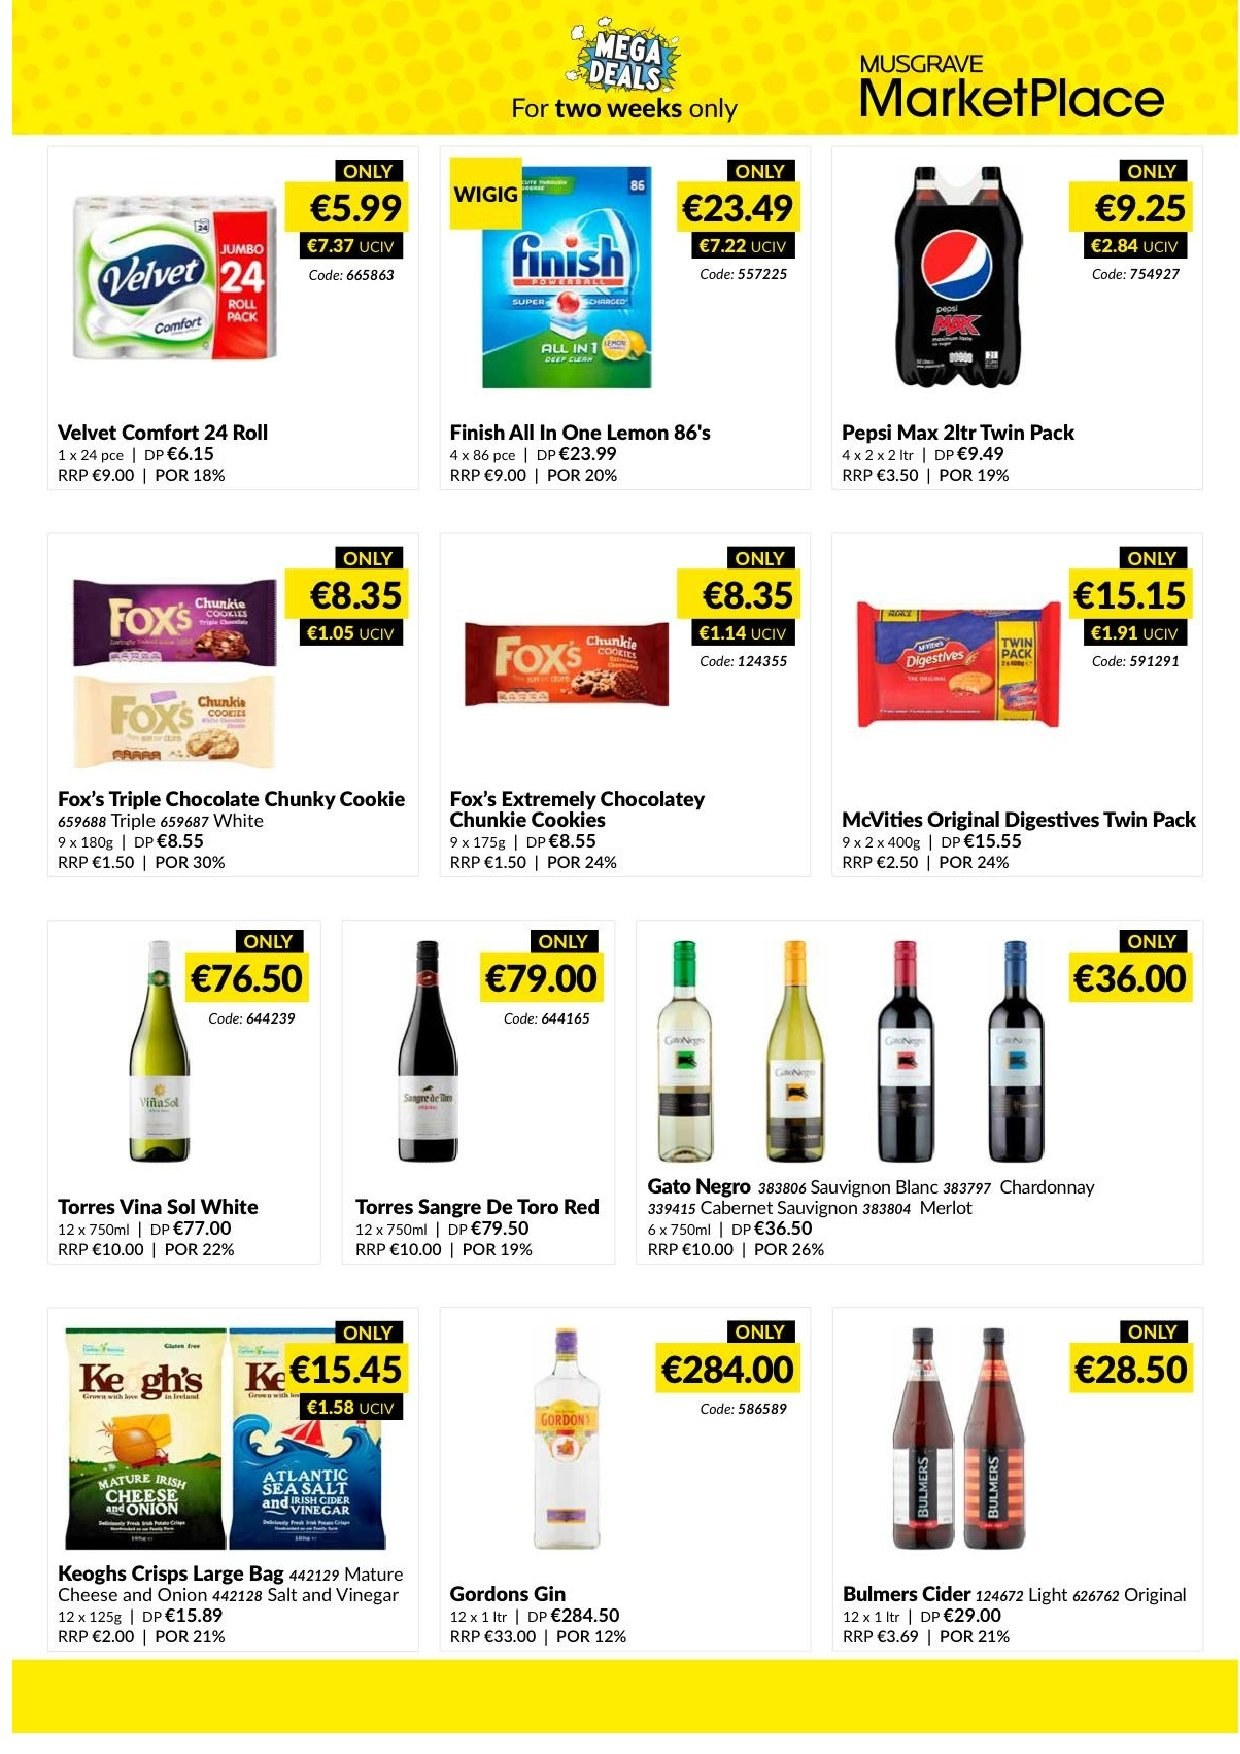 MUSGRAVE Market Place offer  - 3.3.2019 - 16.3.2019 - Sales products - onion, cheese, cookies, chocolate, salt, sea salt, vinegar, Pepsi, Pepsi Max, Cabernet Sauvignon, Chardonnay, merlot, sauvignon, gin. Page 2.